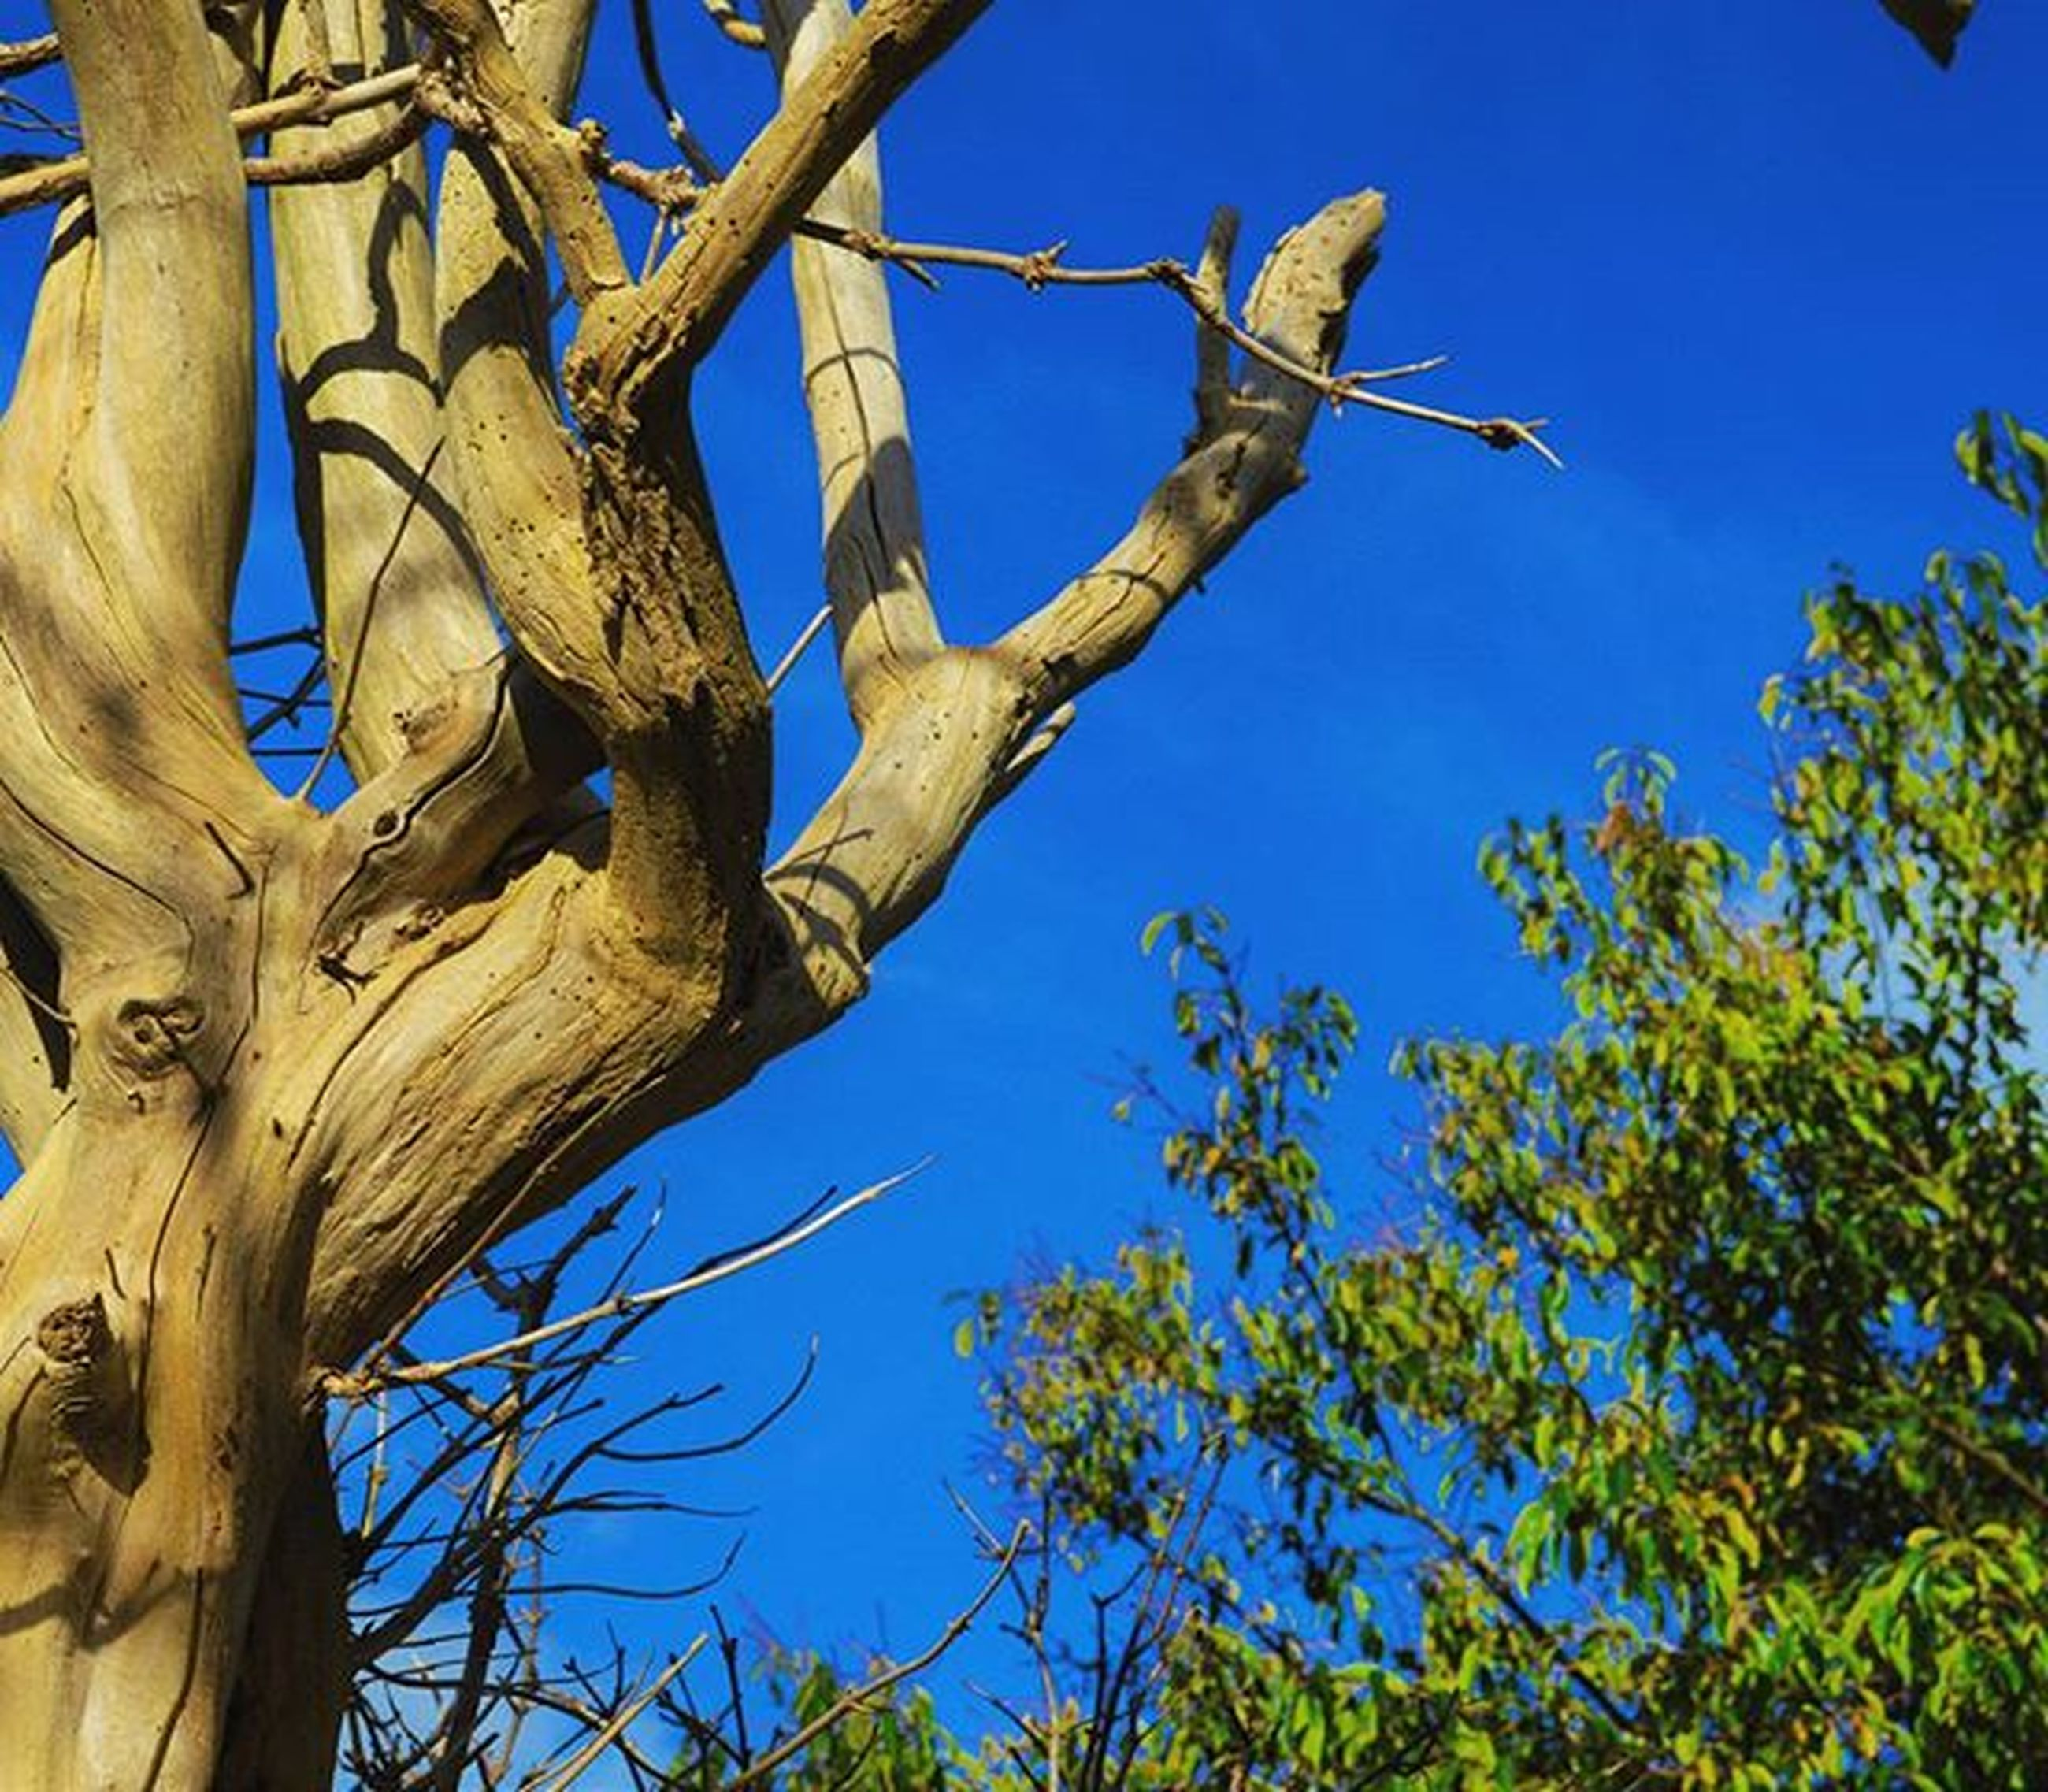 low angle view, tree, branch, blue, clear sky, growth, nature, sky, tree trunk, day, outdoors, sunlight, tranquility, no people, beauty in nature, bare tree, close-up, leaf, plant, part of